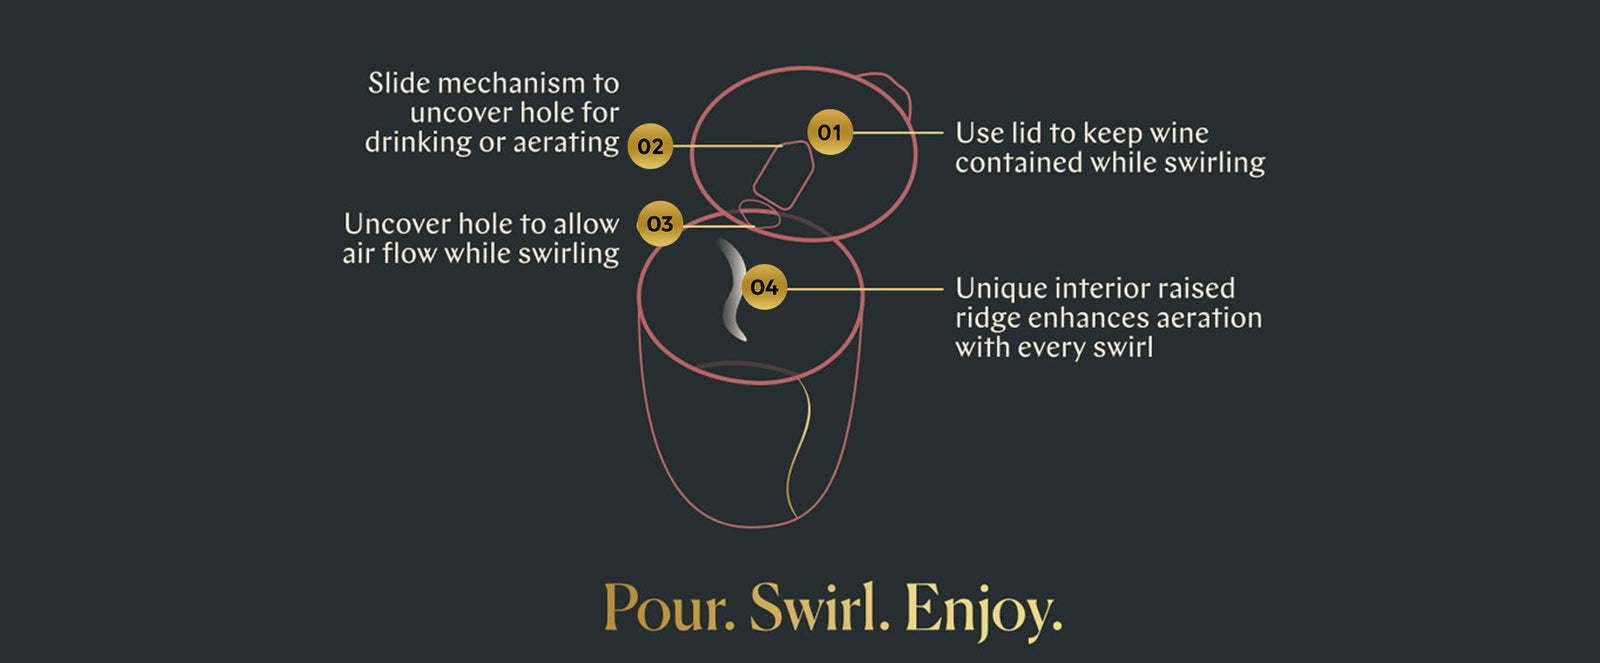 Slide mechanism to uncover hole for drinking or aerating 02, 01, Use lid to keep wine contained while swirling, Uncover hole allow 03 air flow while swirling, 04, Unique interior raised ridge enhances aeration with every swirl, Pour. Swirl. Enjoy